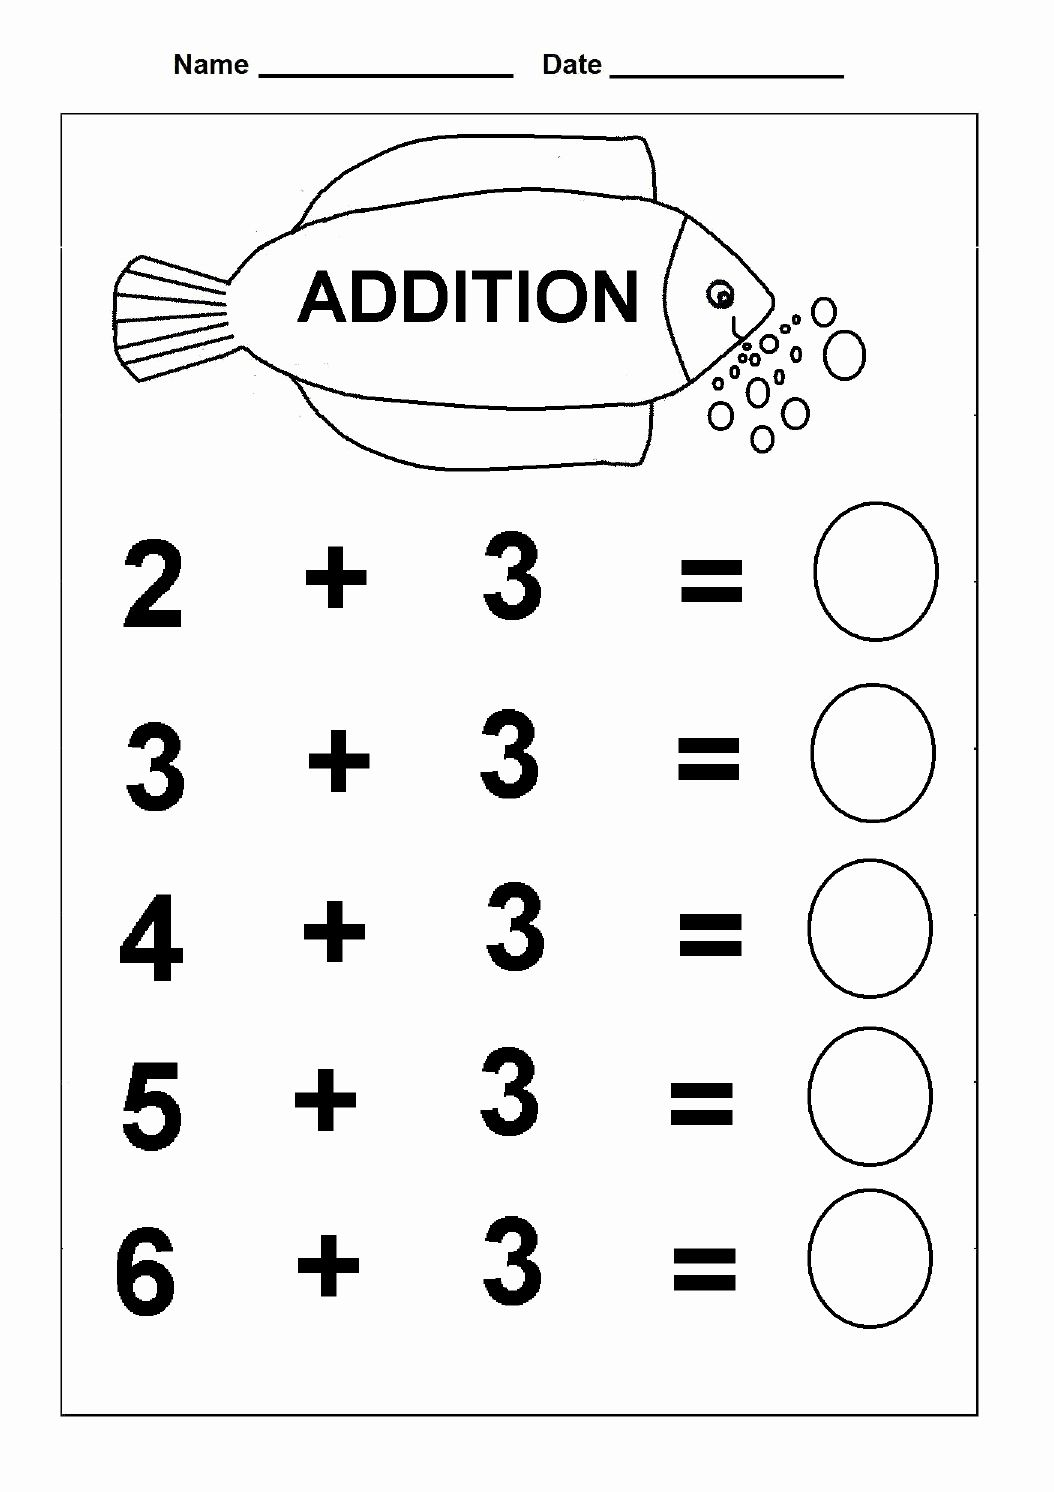 Addition Worksheets Kindergarten Activities 2 In